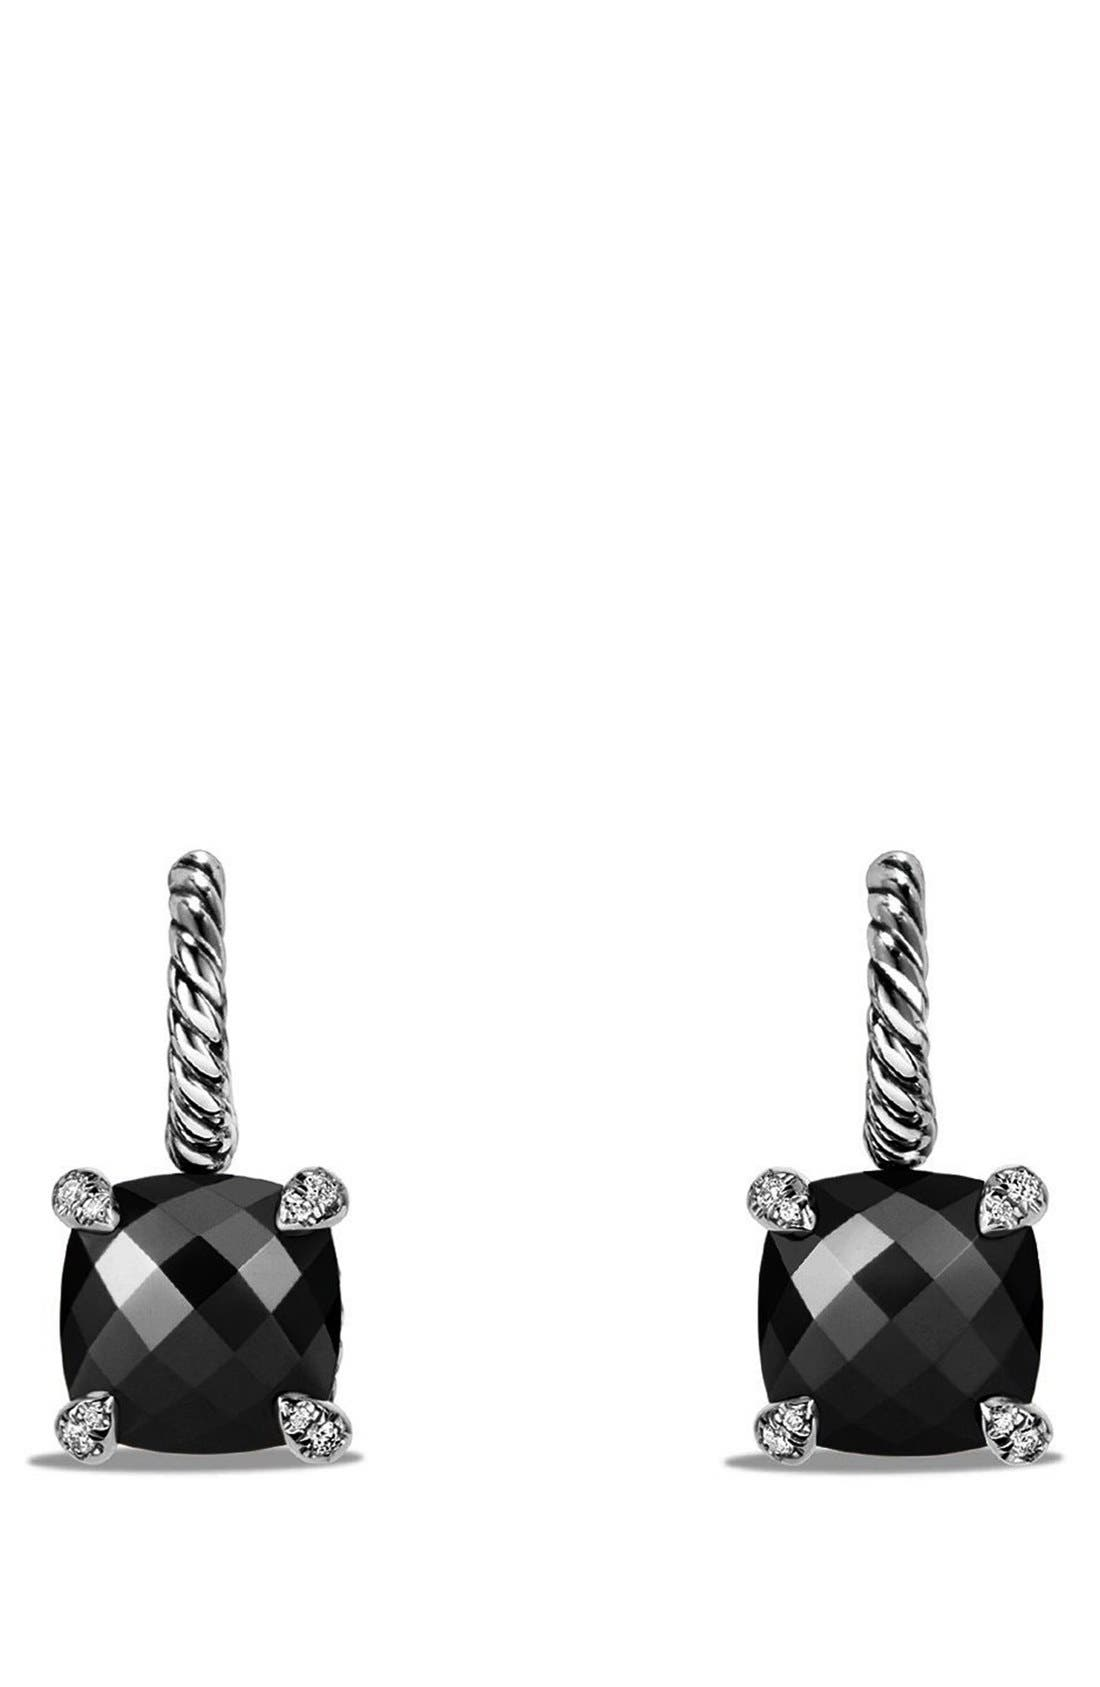 'Châtelaine' Drop Earrings with Semiprecious Stones and Diamonds,                             Main thumbnail 1, color,                             001